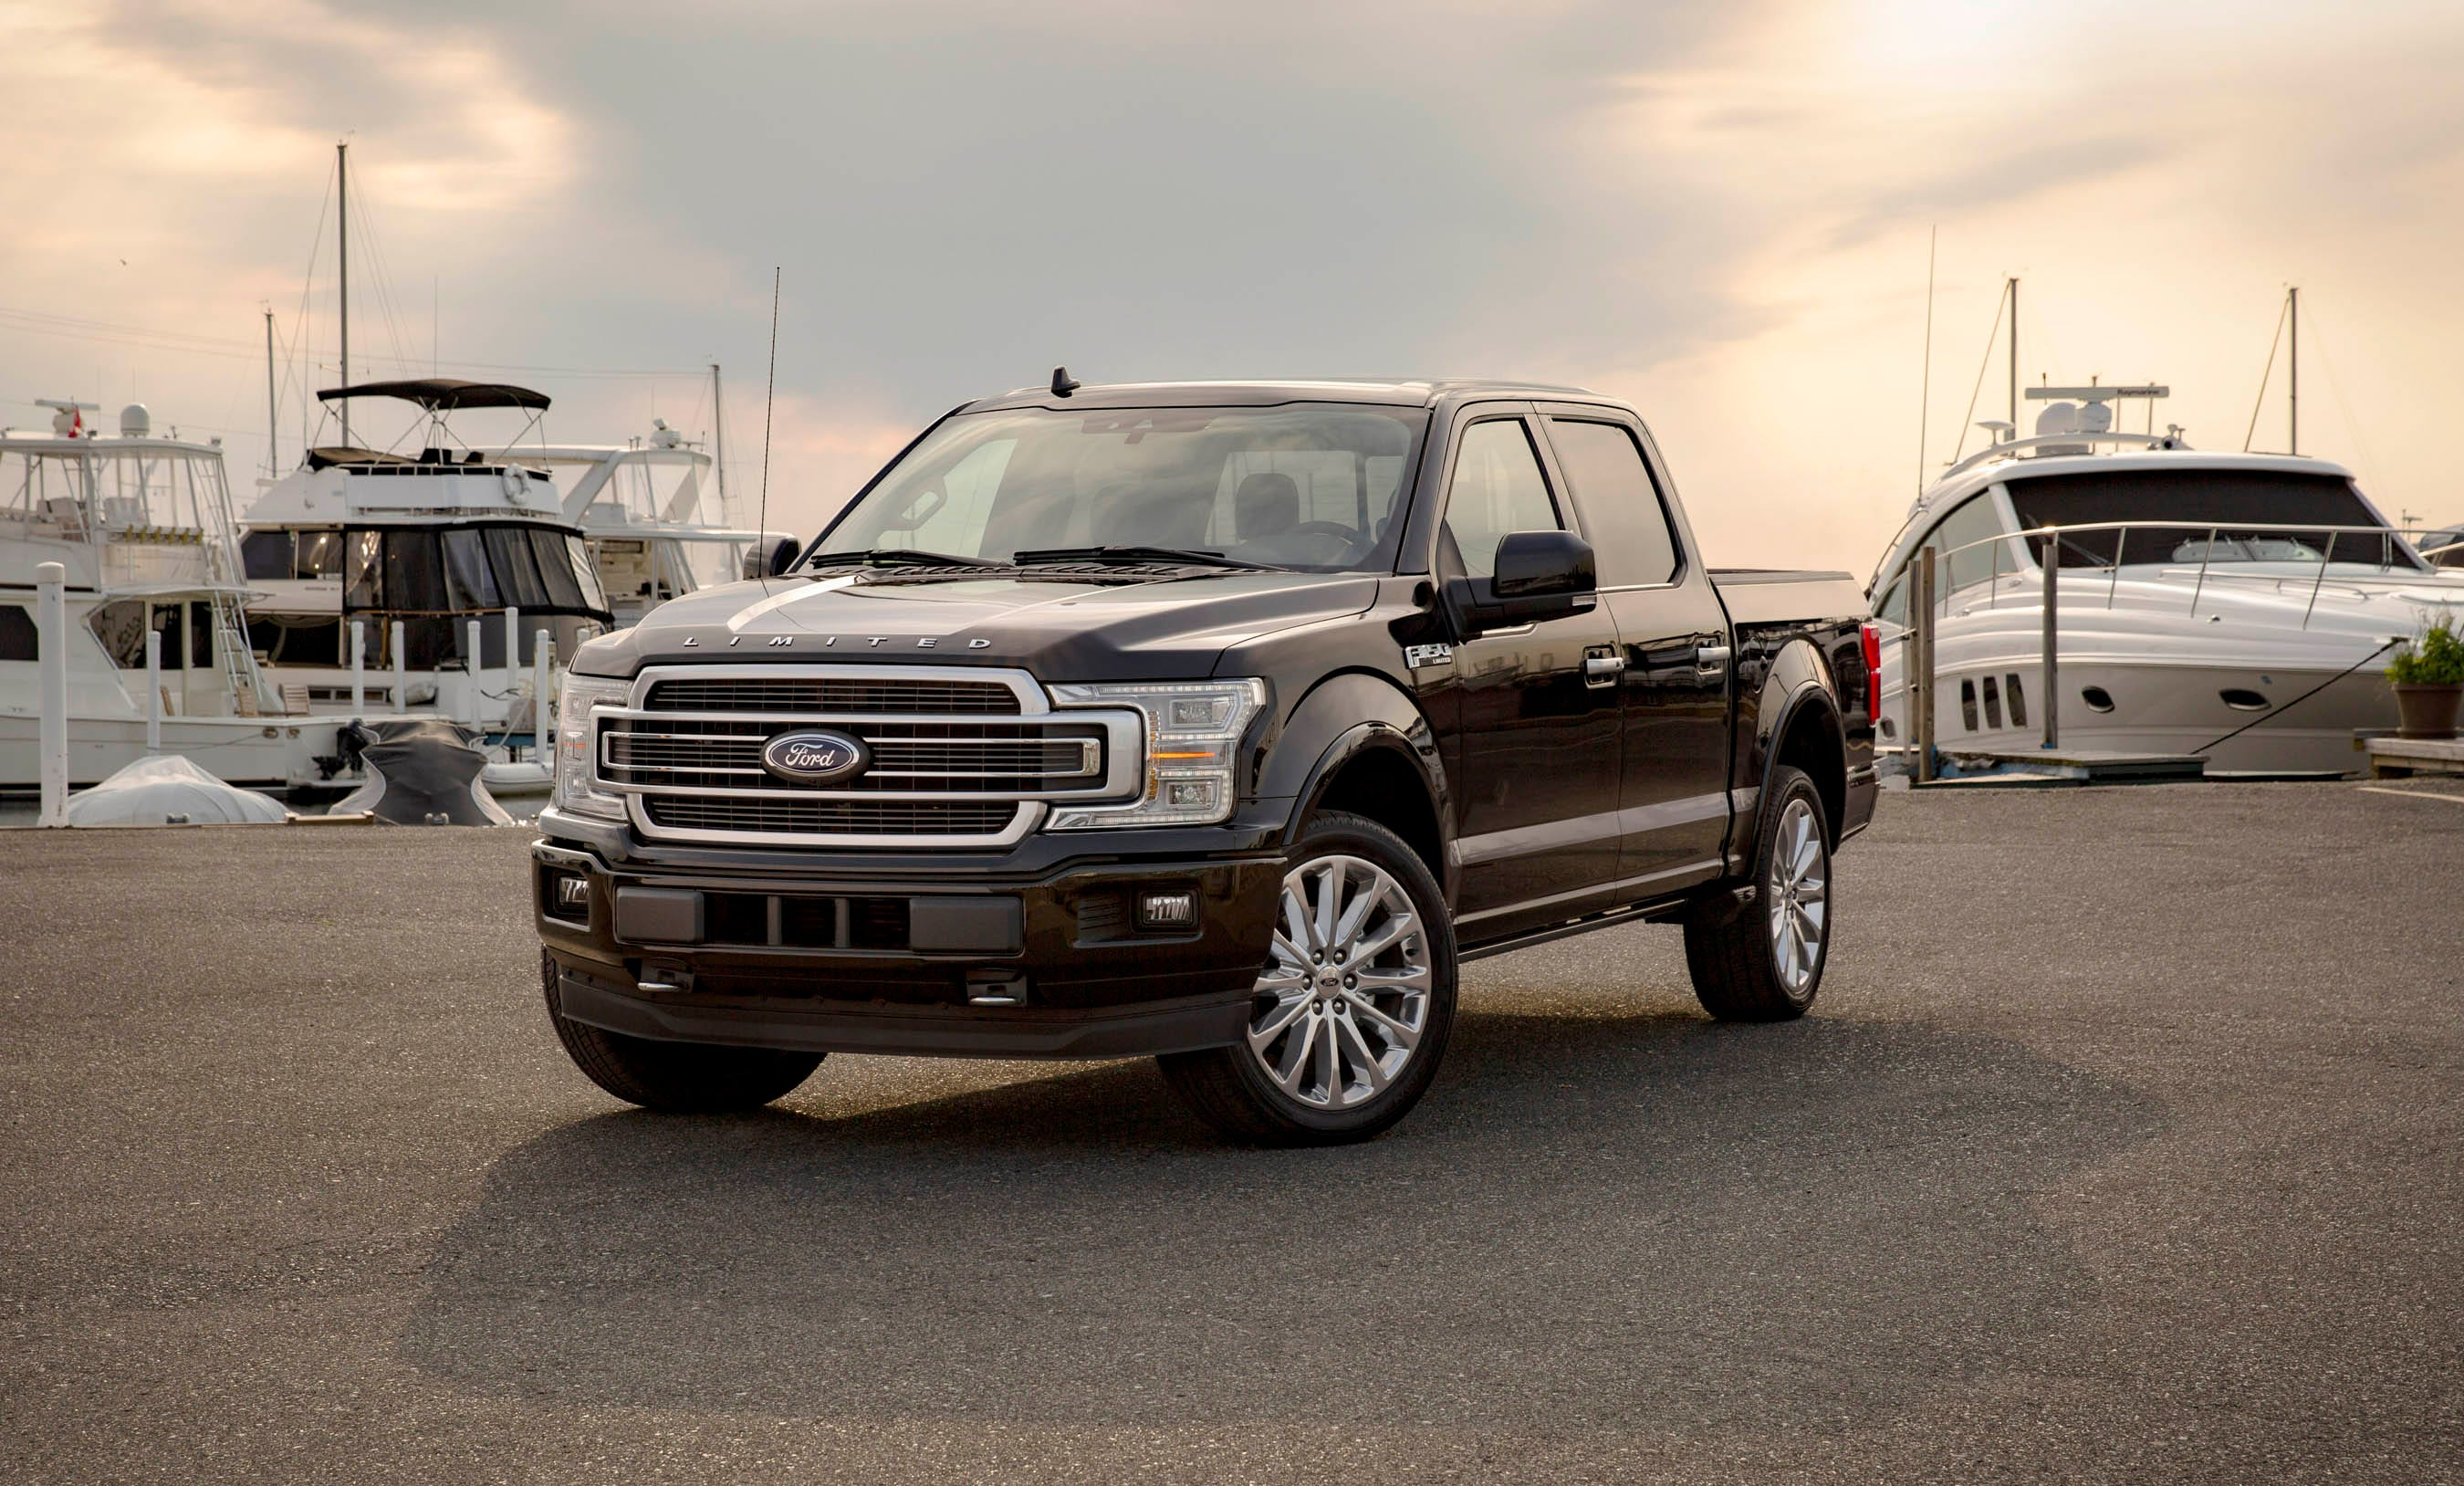 Ford recalls F-150 pickups to fix headlight defects